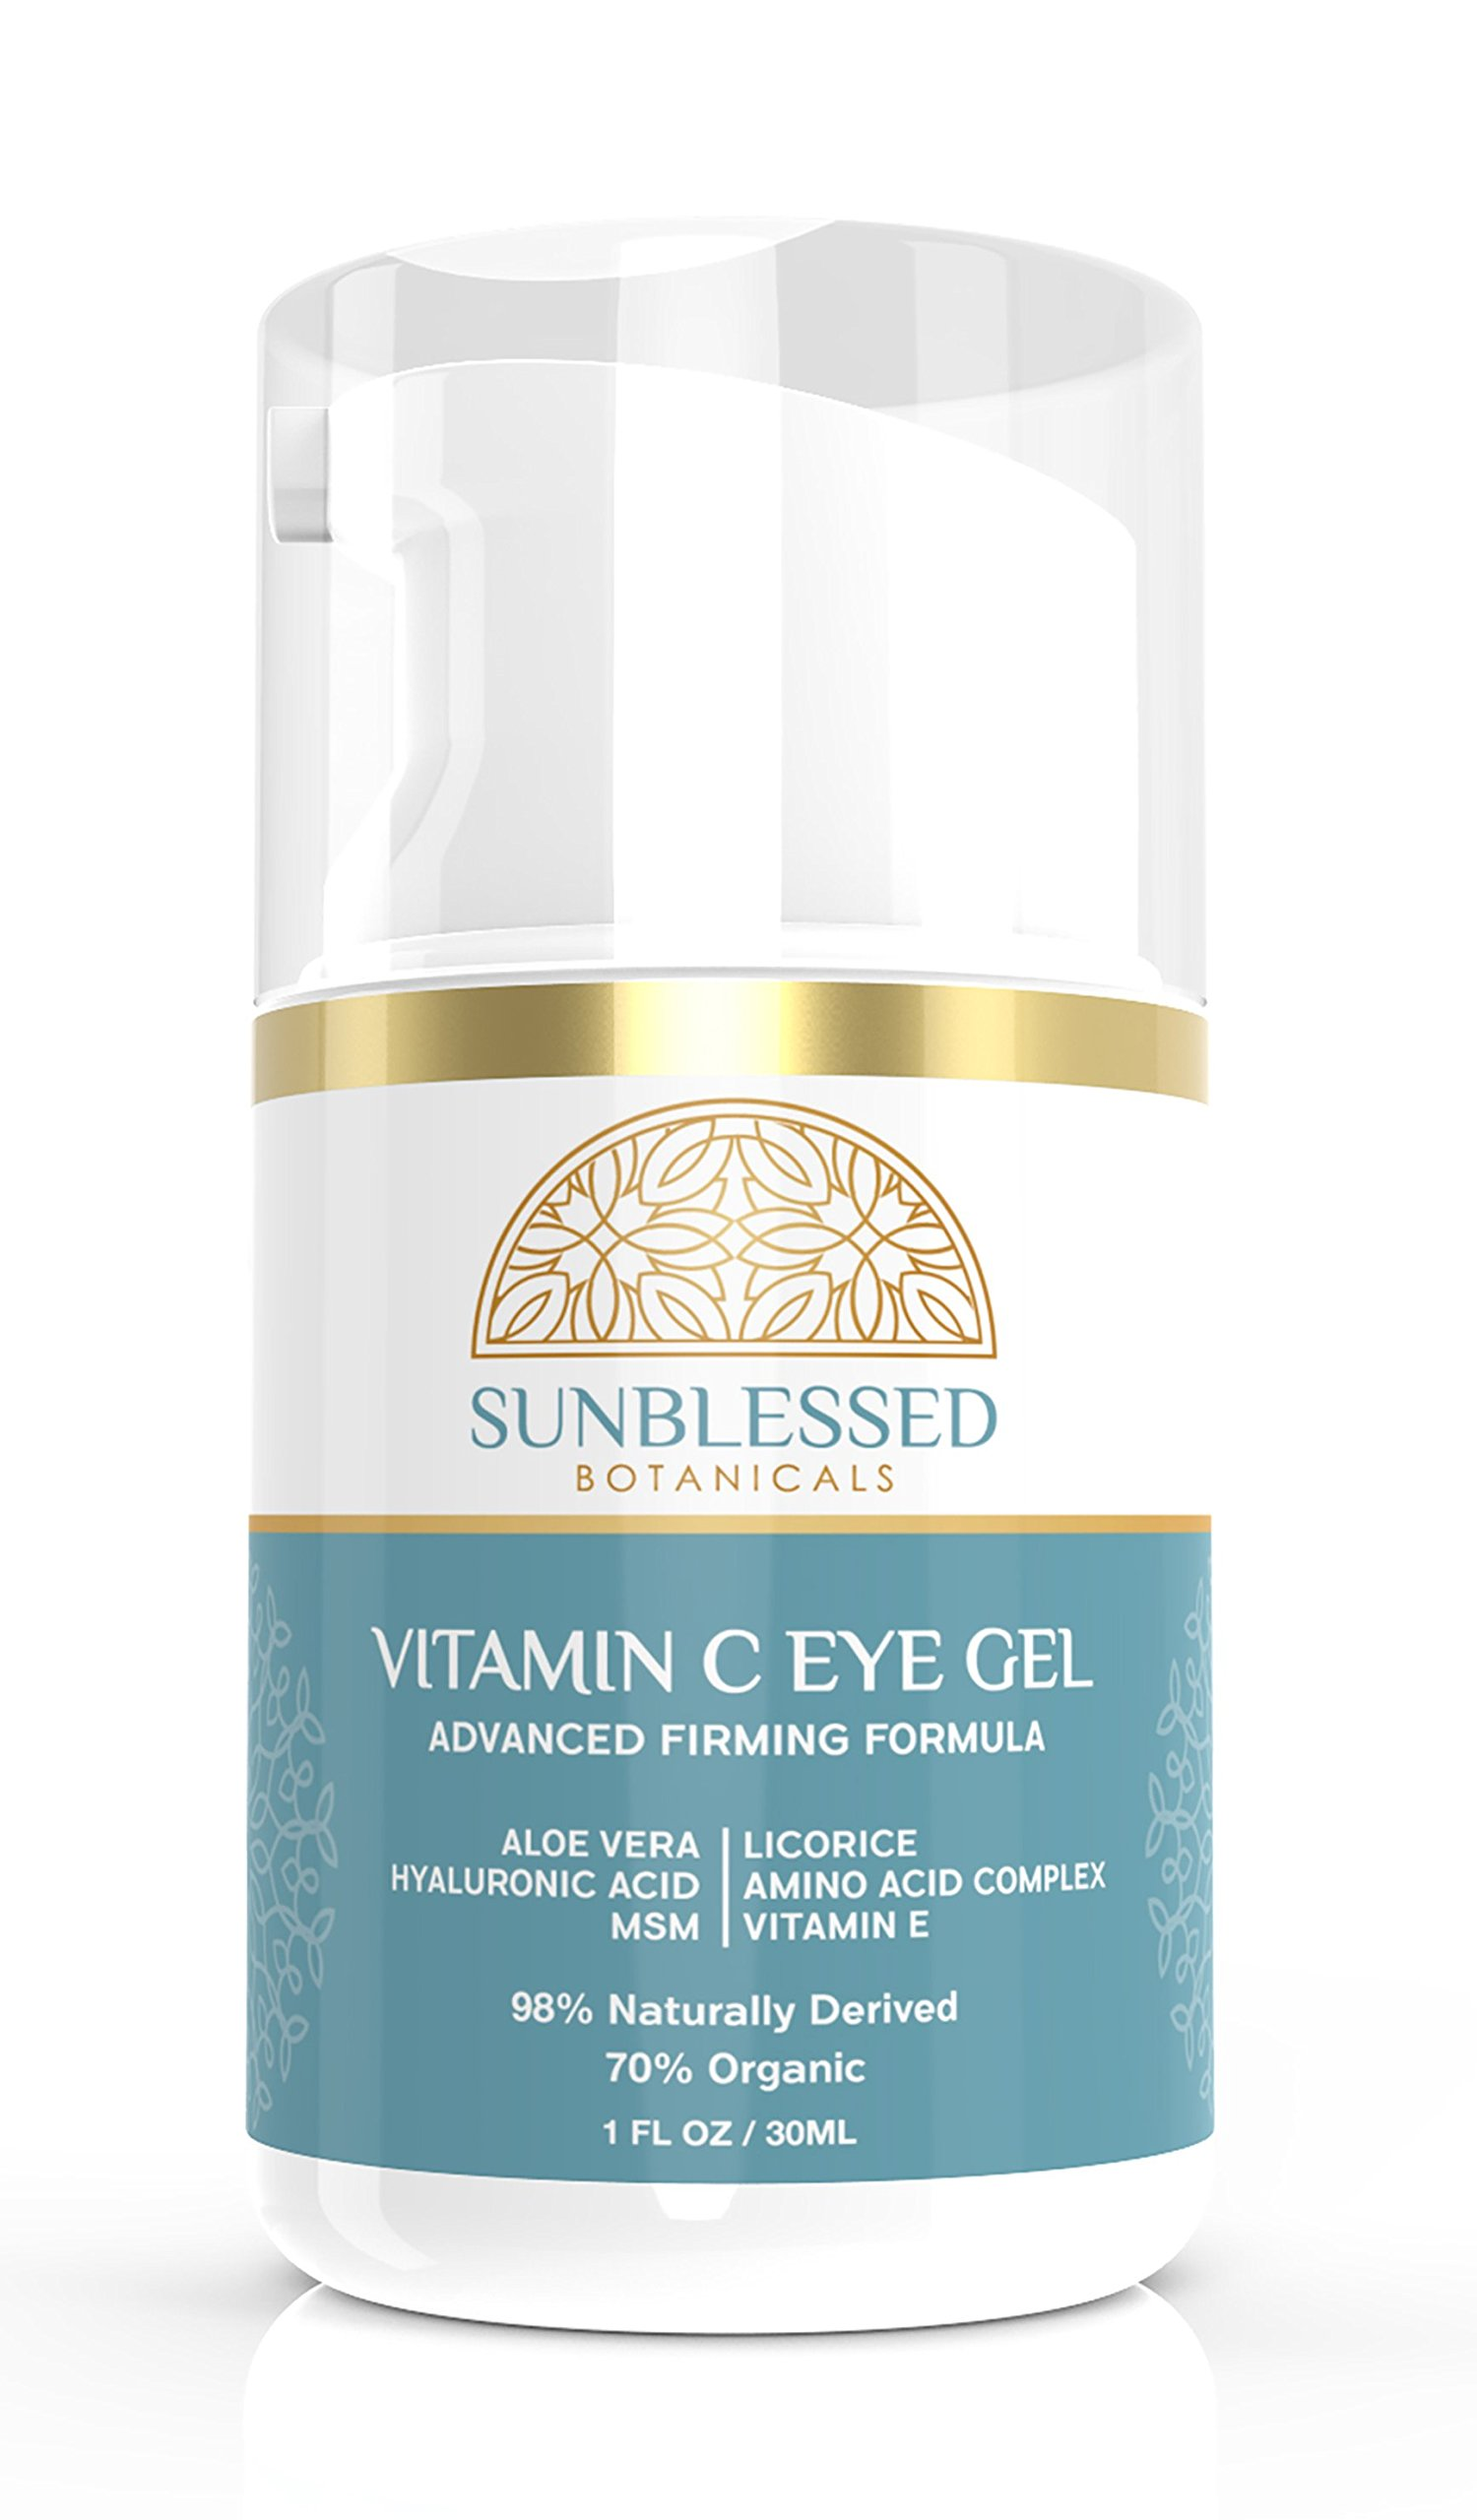 Vitamin C Eye Gel for Under Eye Bags Treatment Dark Circles Puffiness Wrinkles Crows Feet and Anti Aging Skin Care with Hyaluronic Acid Made in USA by SunBlessed Botanicals by SunBlessed Botanicals (Image #6)